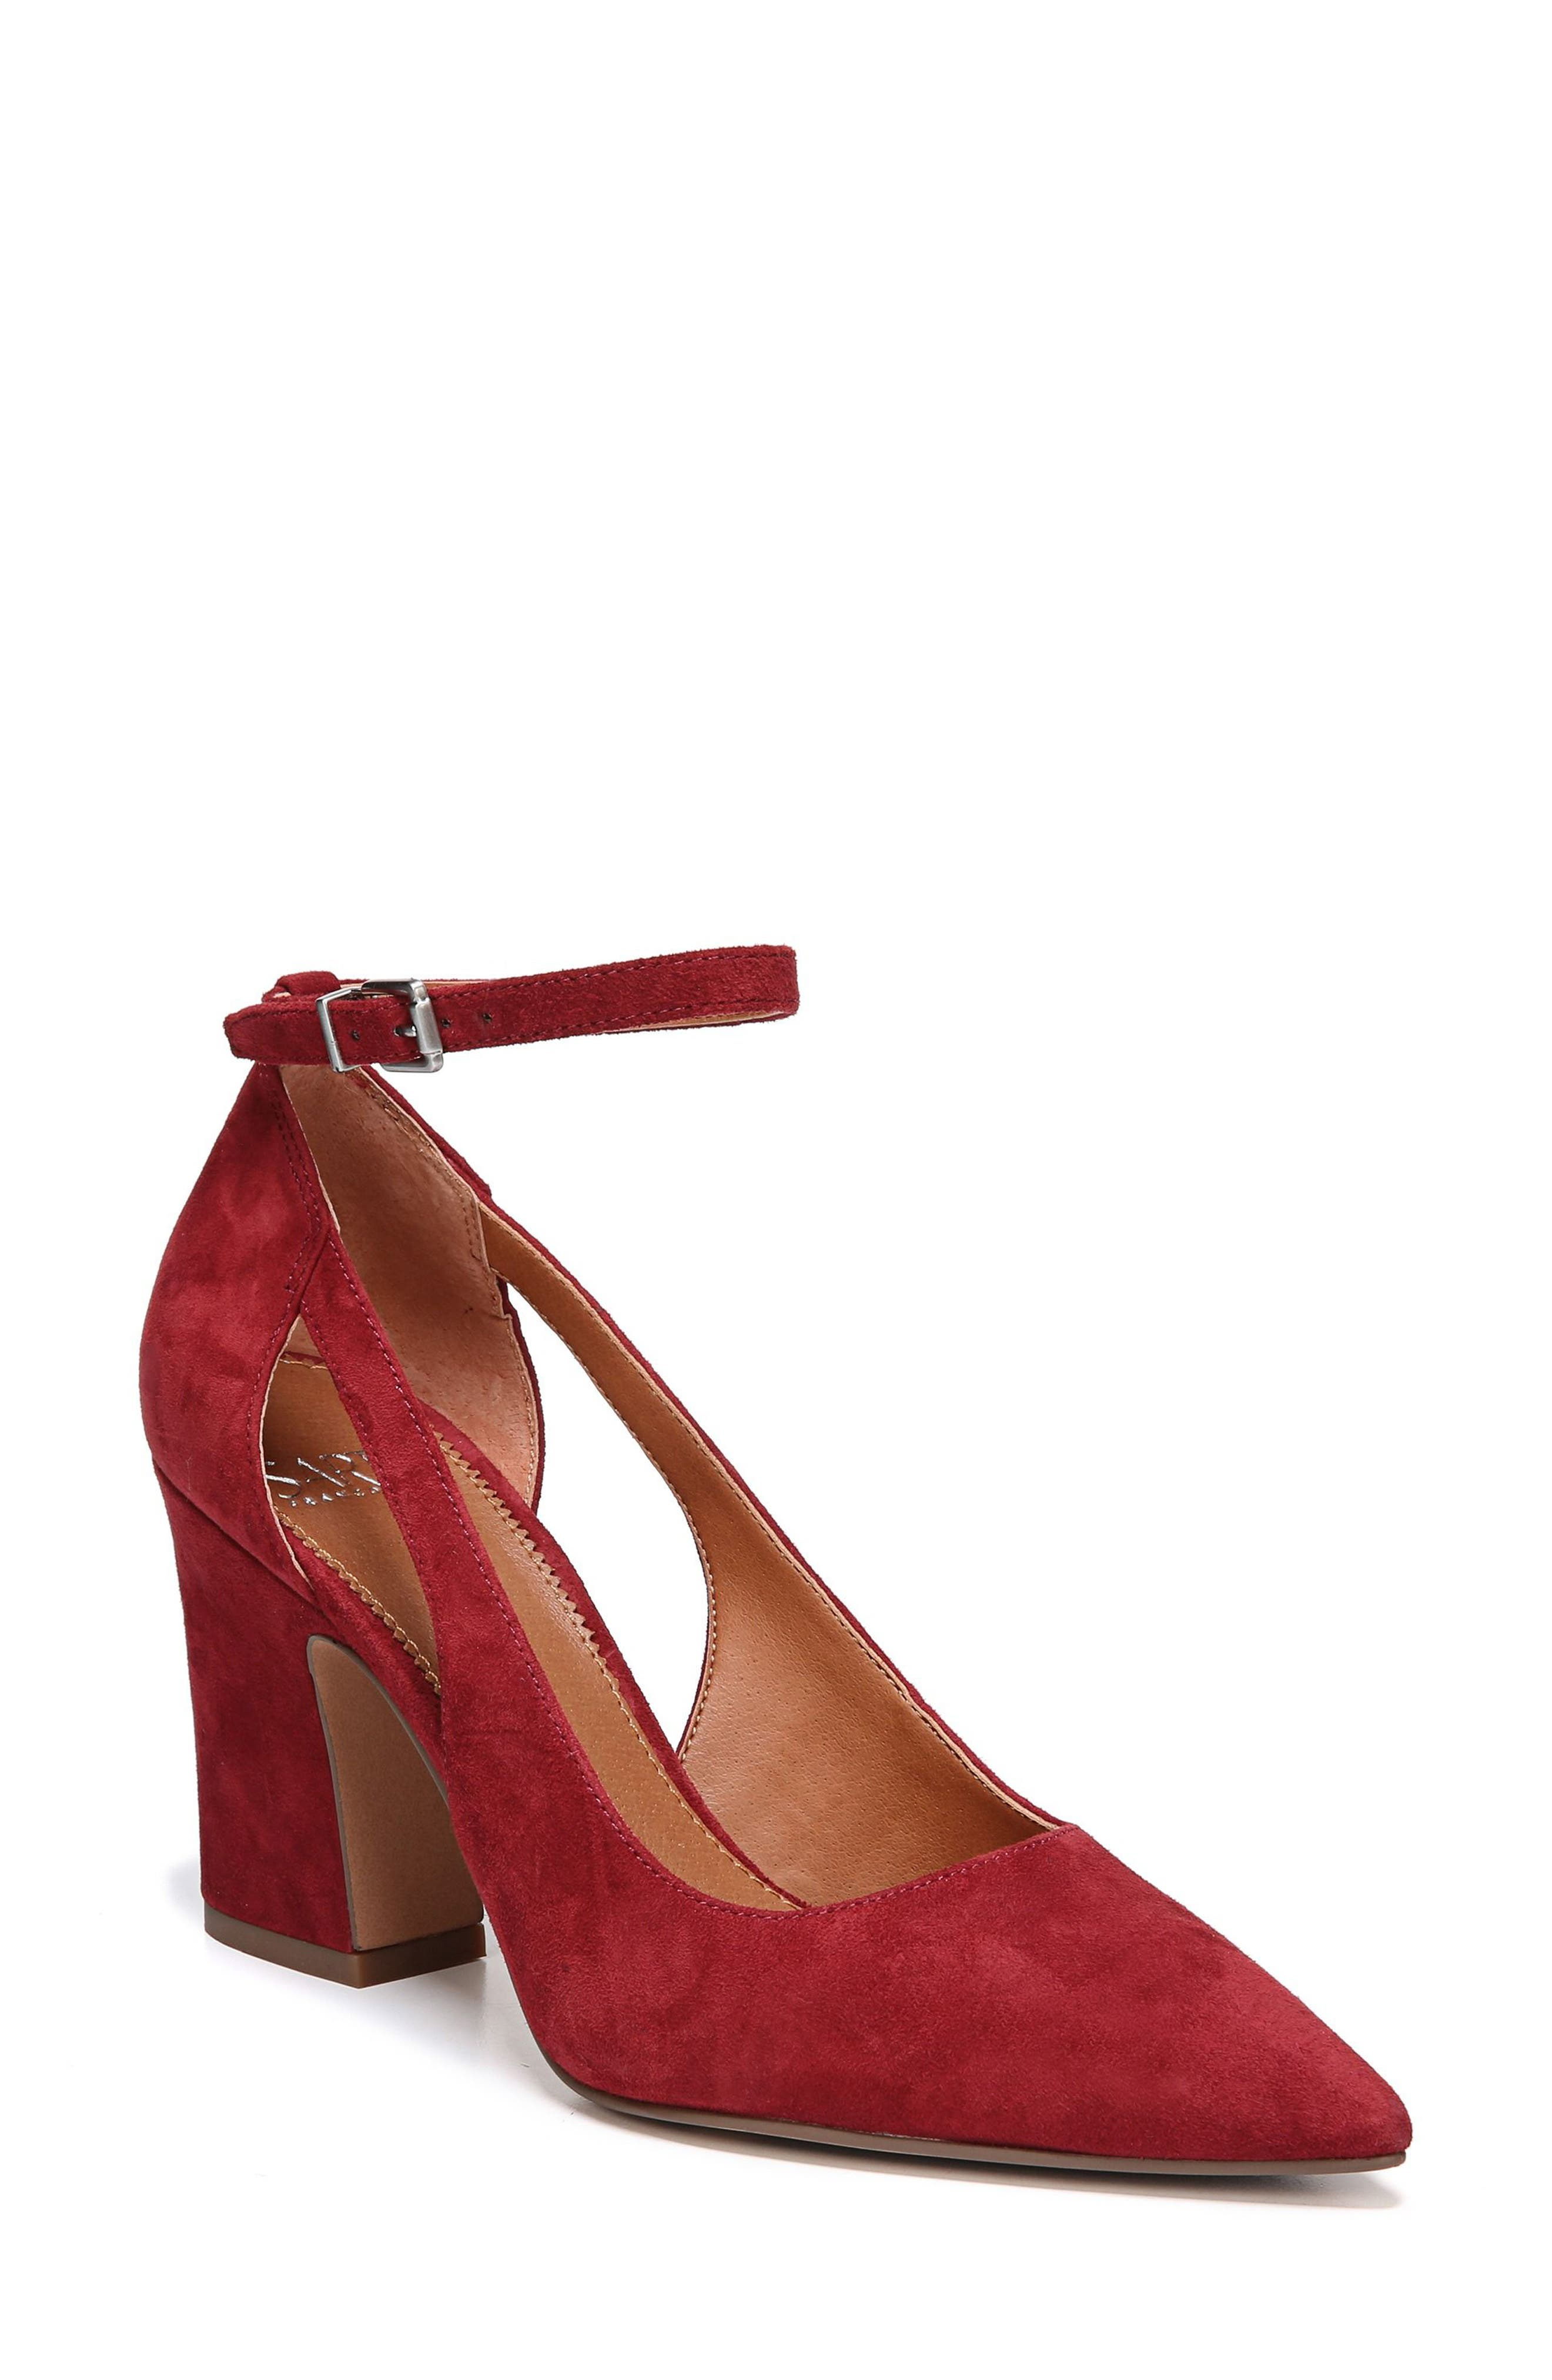 Kalindi Pump,                             Main thumbnail 1, color,                             Syrah Suede